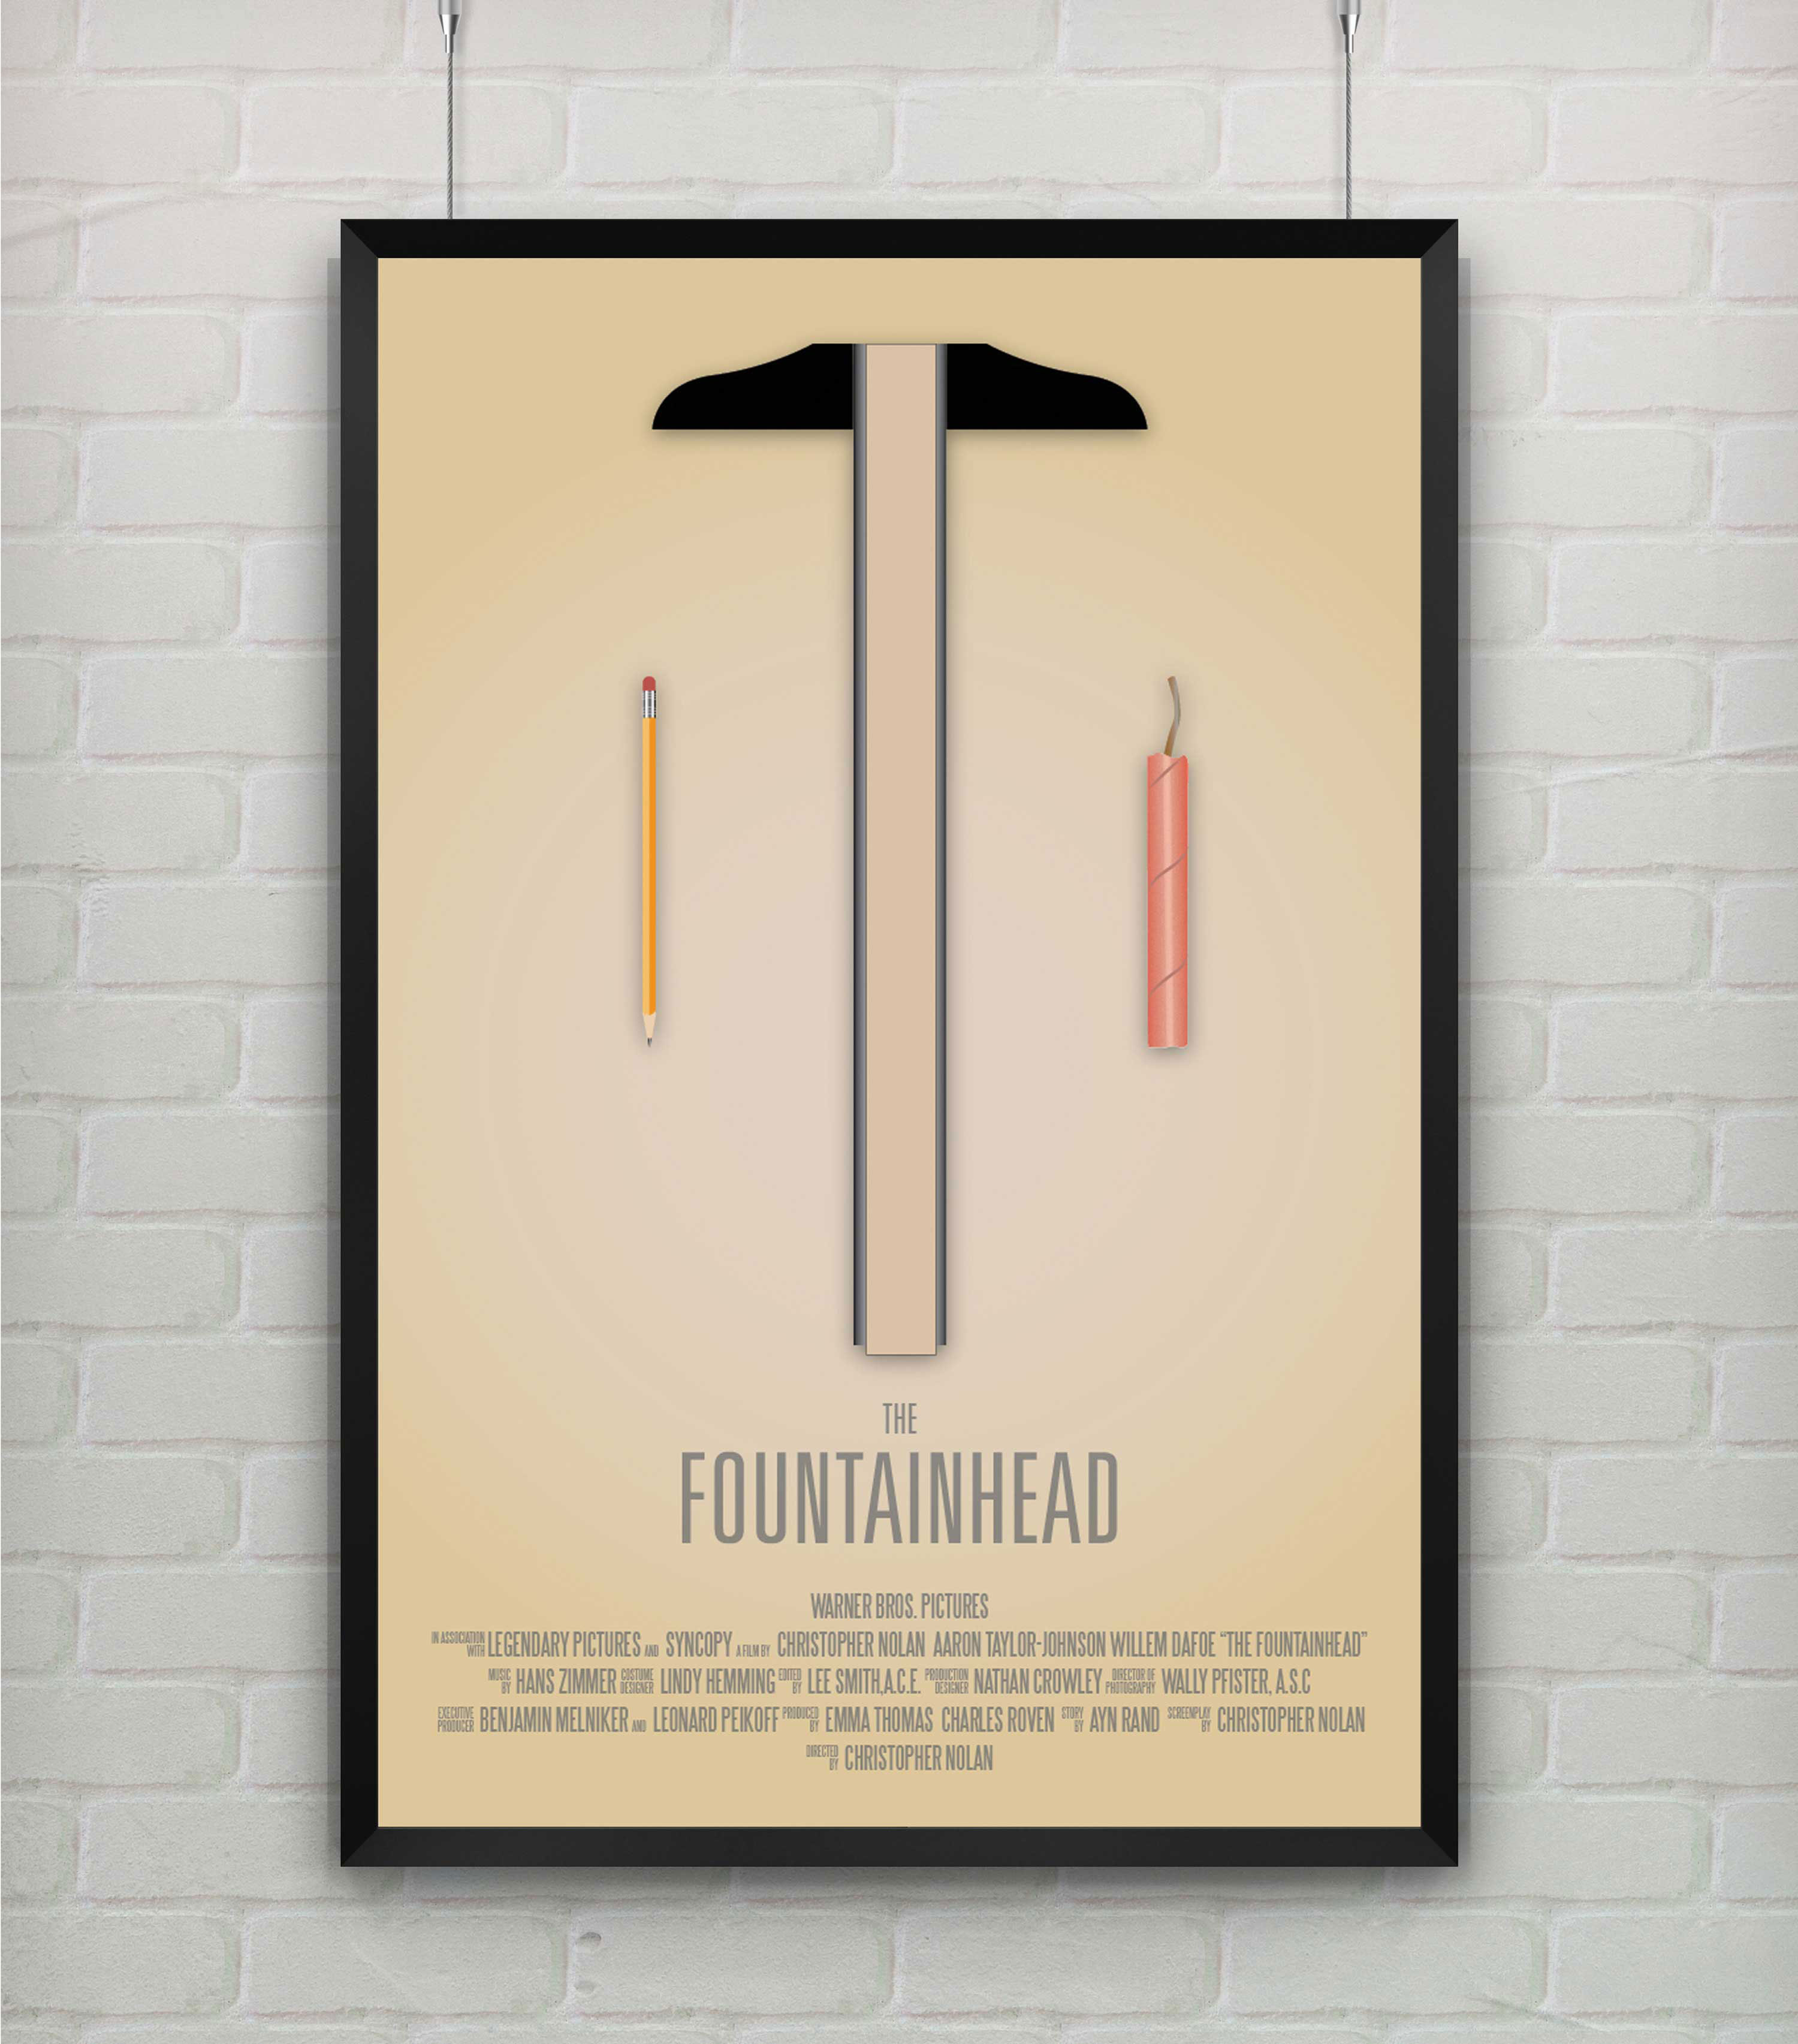 individualism and collectivism in fountainhead by ayn Individualism is the very enemy of the collectivist society that ayn rand is arguing against she alludes to ideas that are associated with collectivist ideals in the real world.